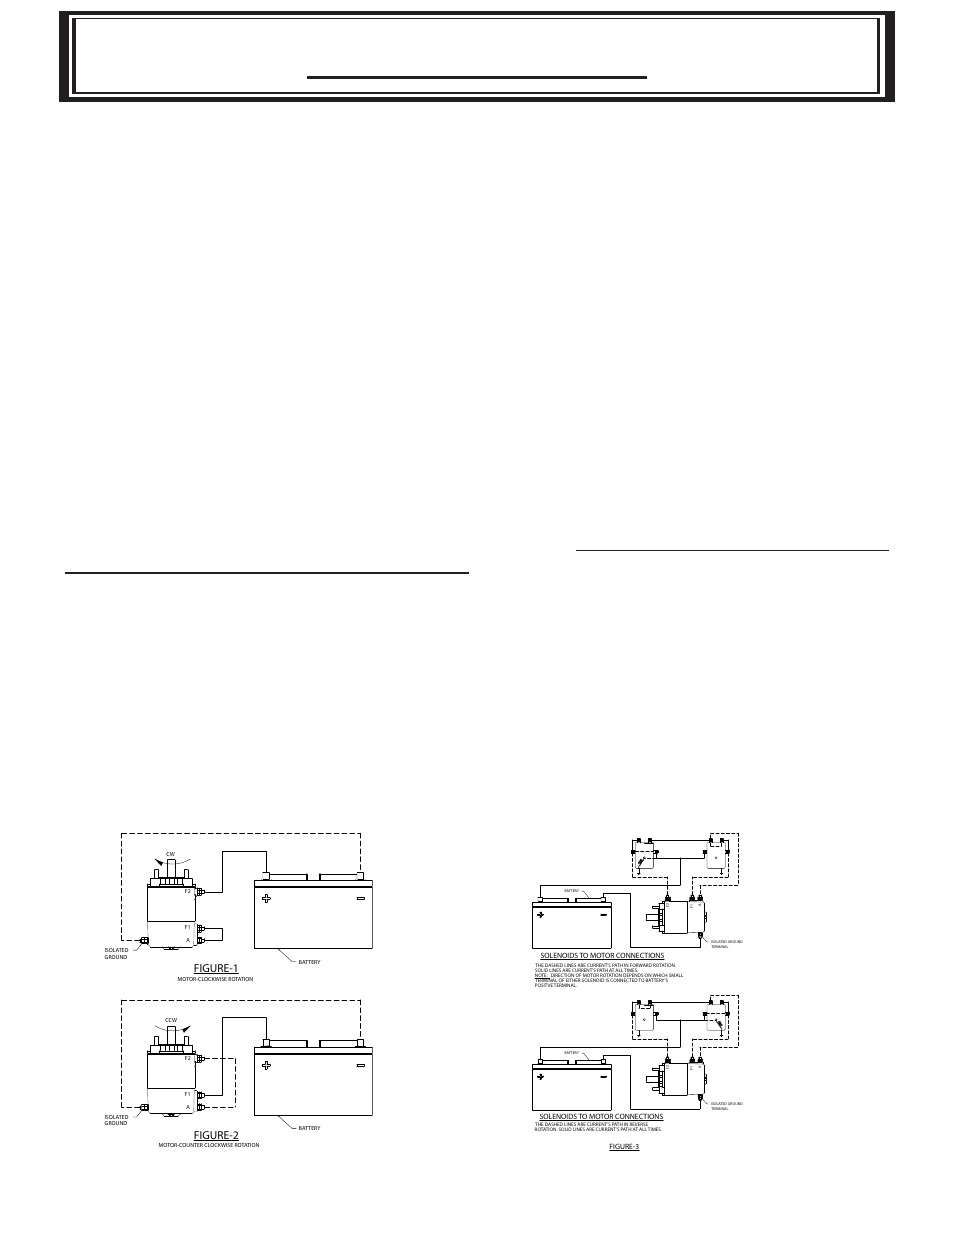 old ramsey winch switch wiring diagram how to test    winch    motor wallpaperzen org  how to test    winch    motor wallpaperzen org